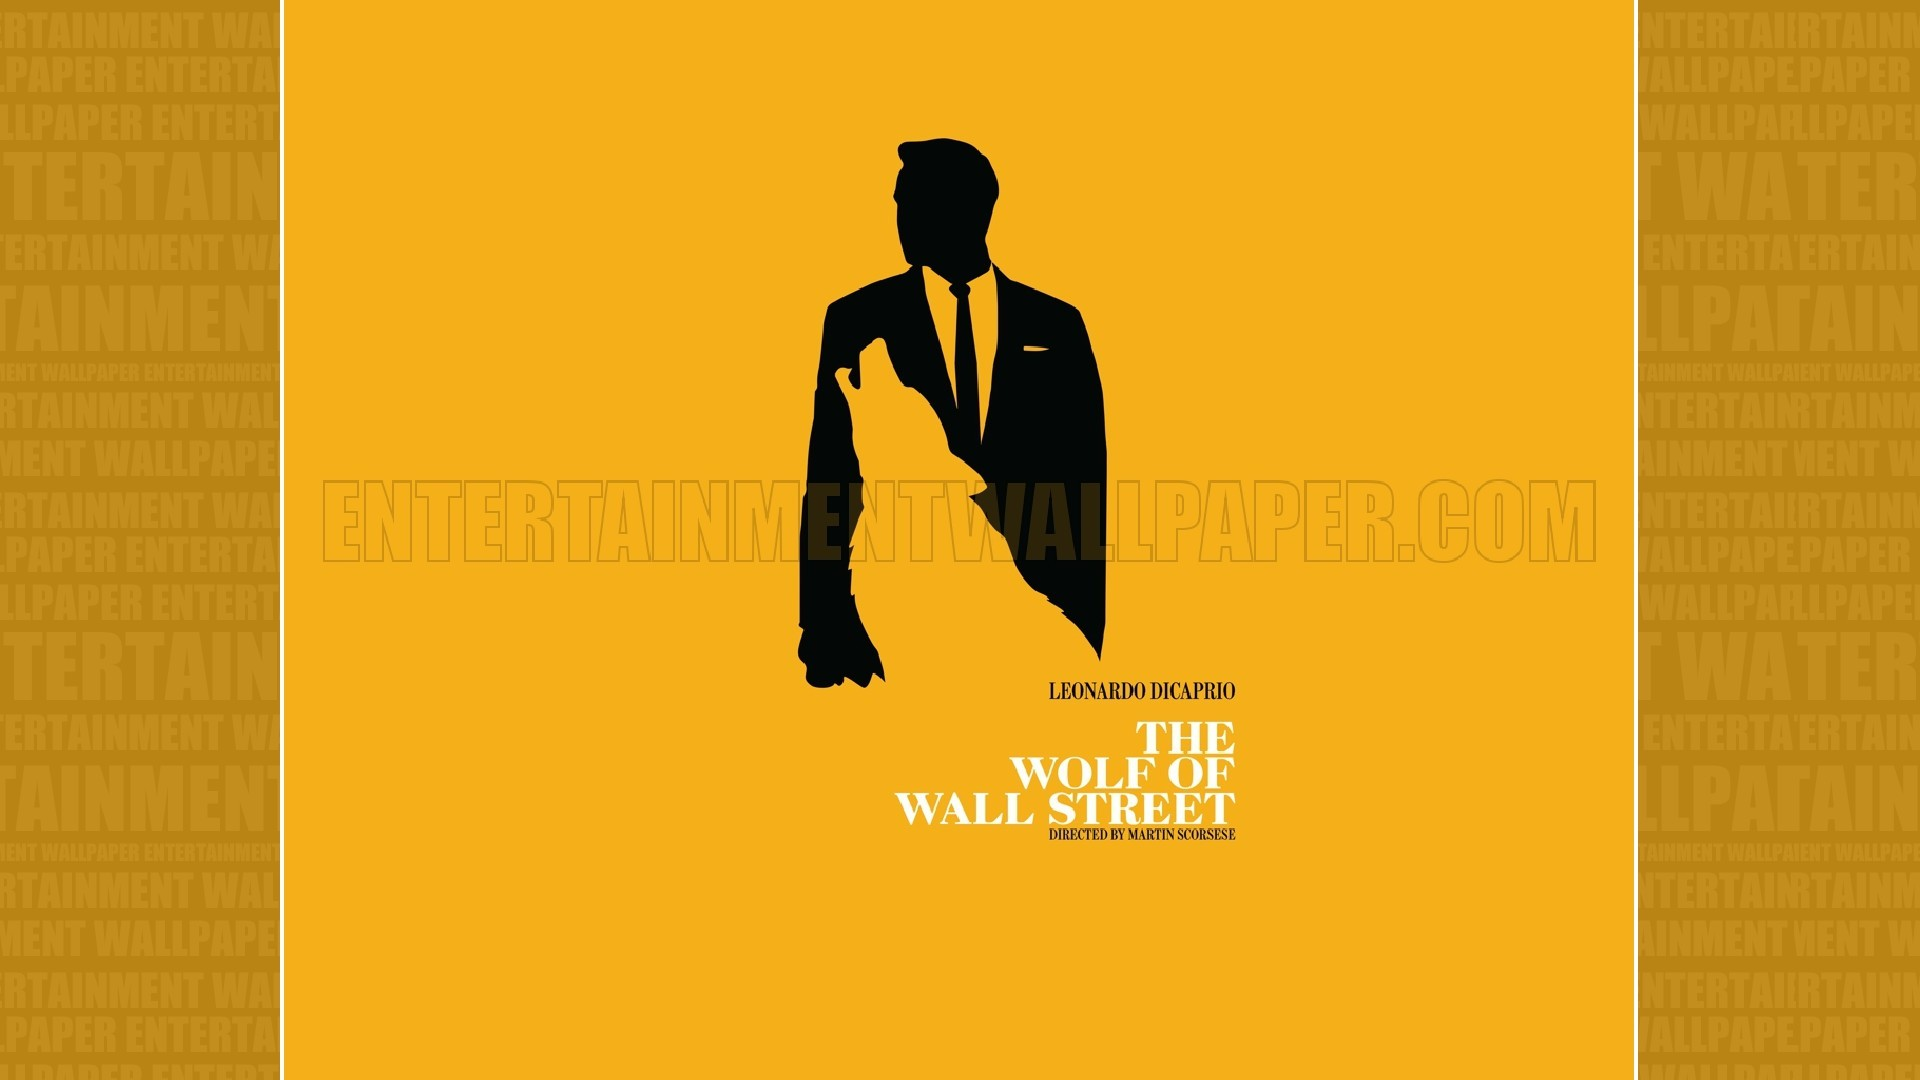 The Wolf of Wall Street Wallpaper – Original size, download now.